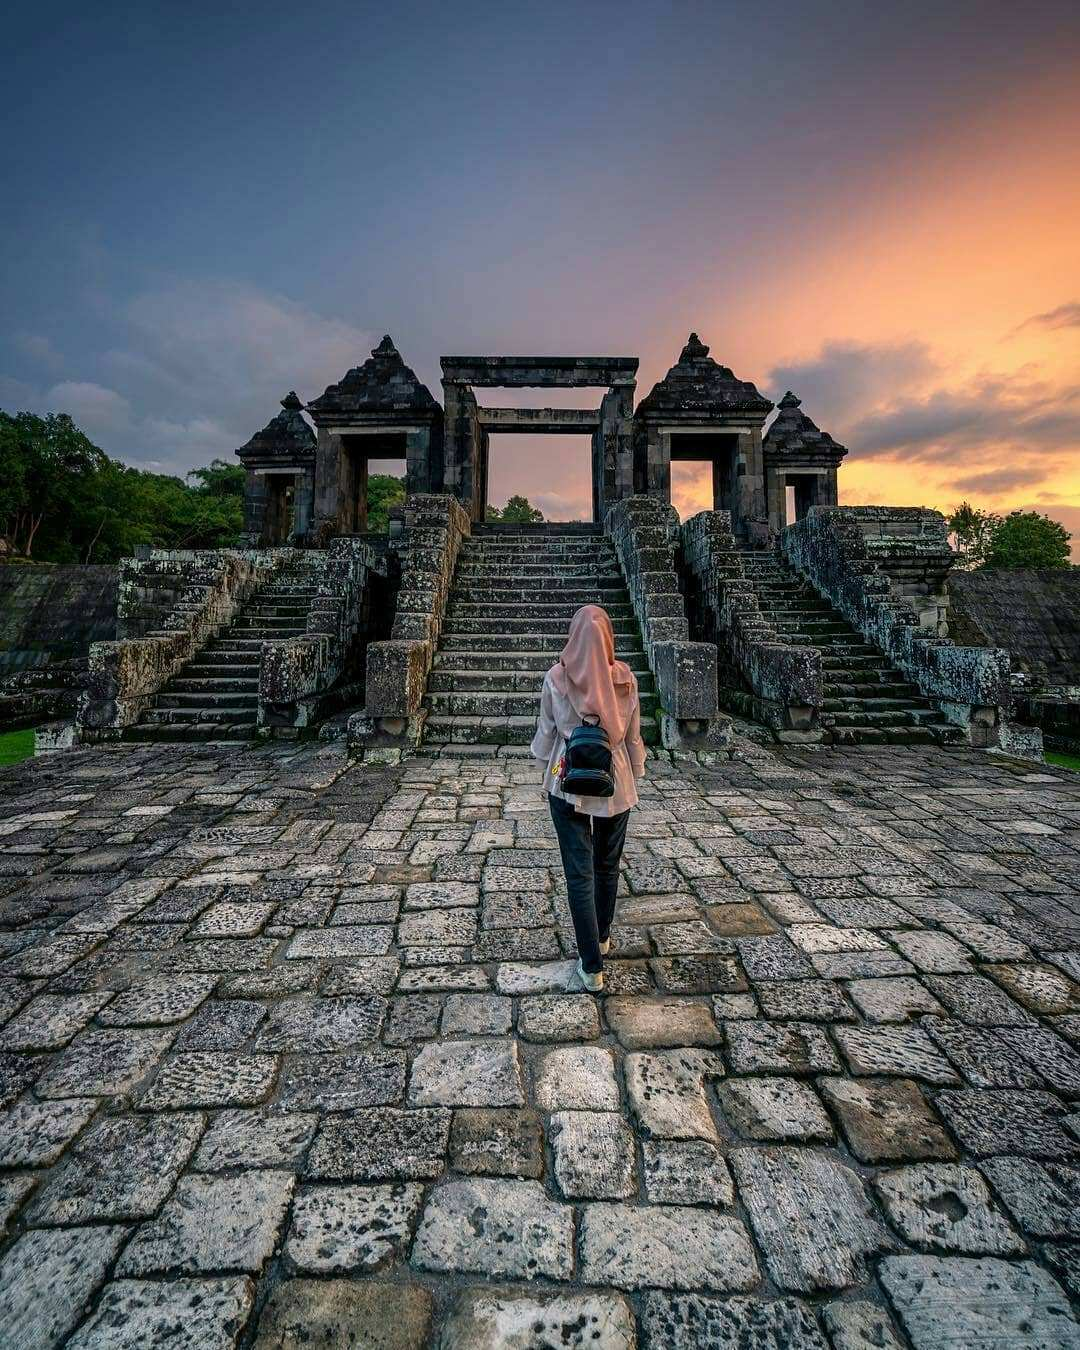 Sunset Ratu Boko Jogja Image From @syahdiea